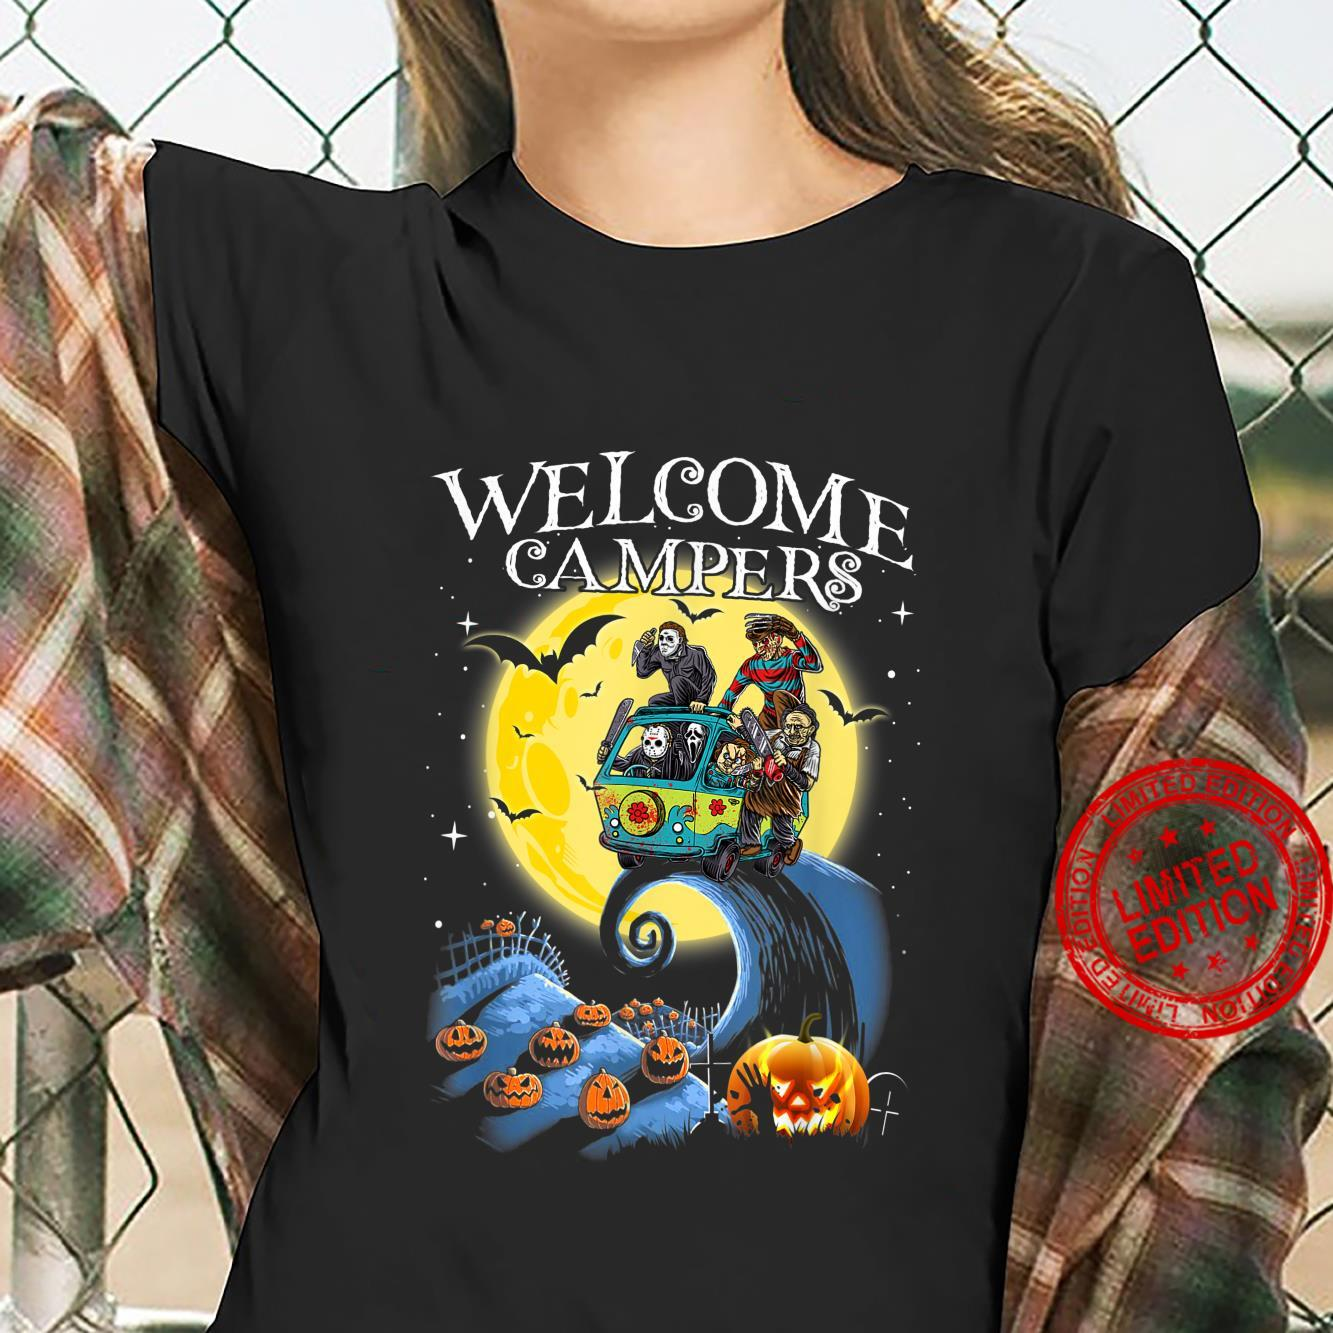 Welcome Campers Funny Camping 80s Horror shirt ladies tee